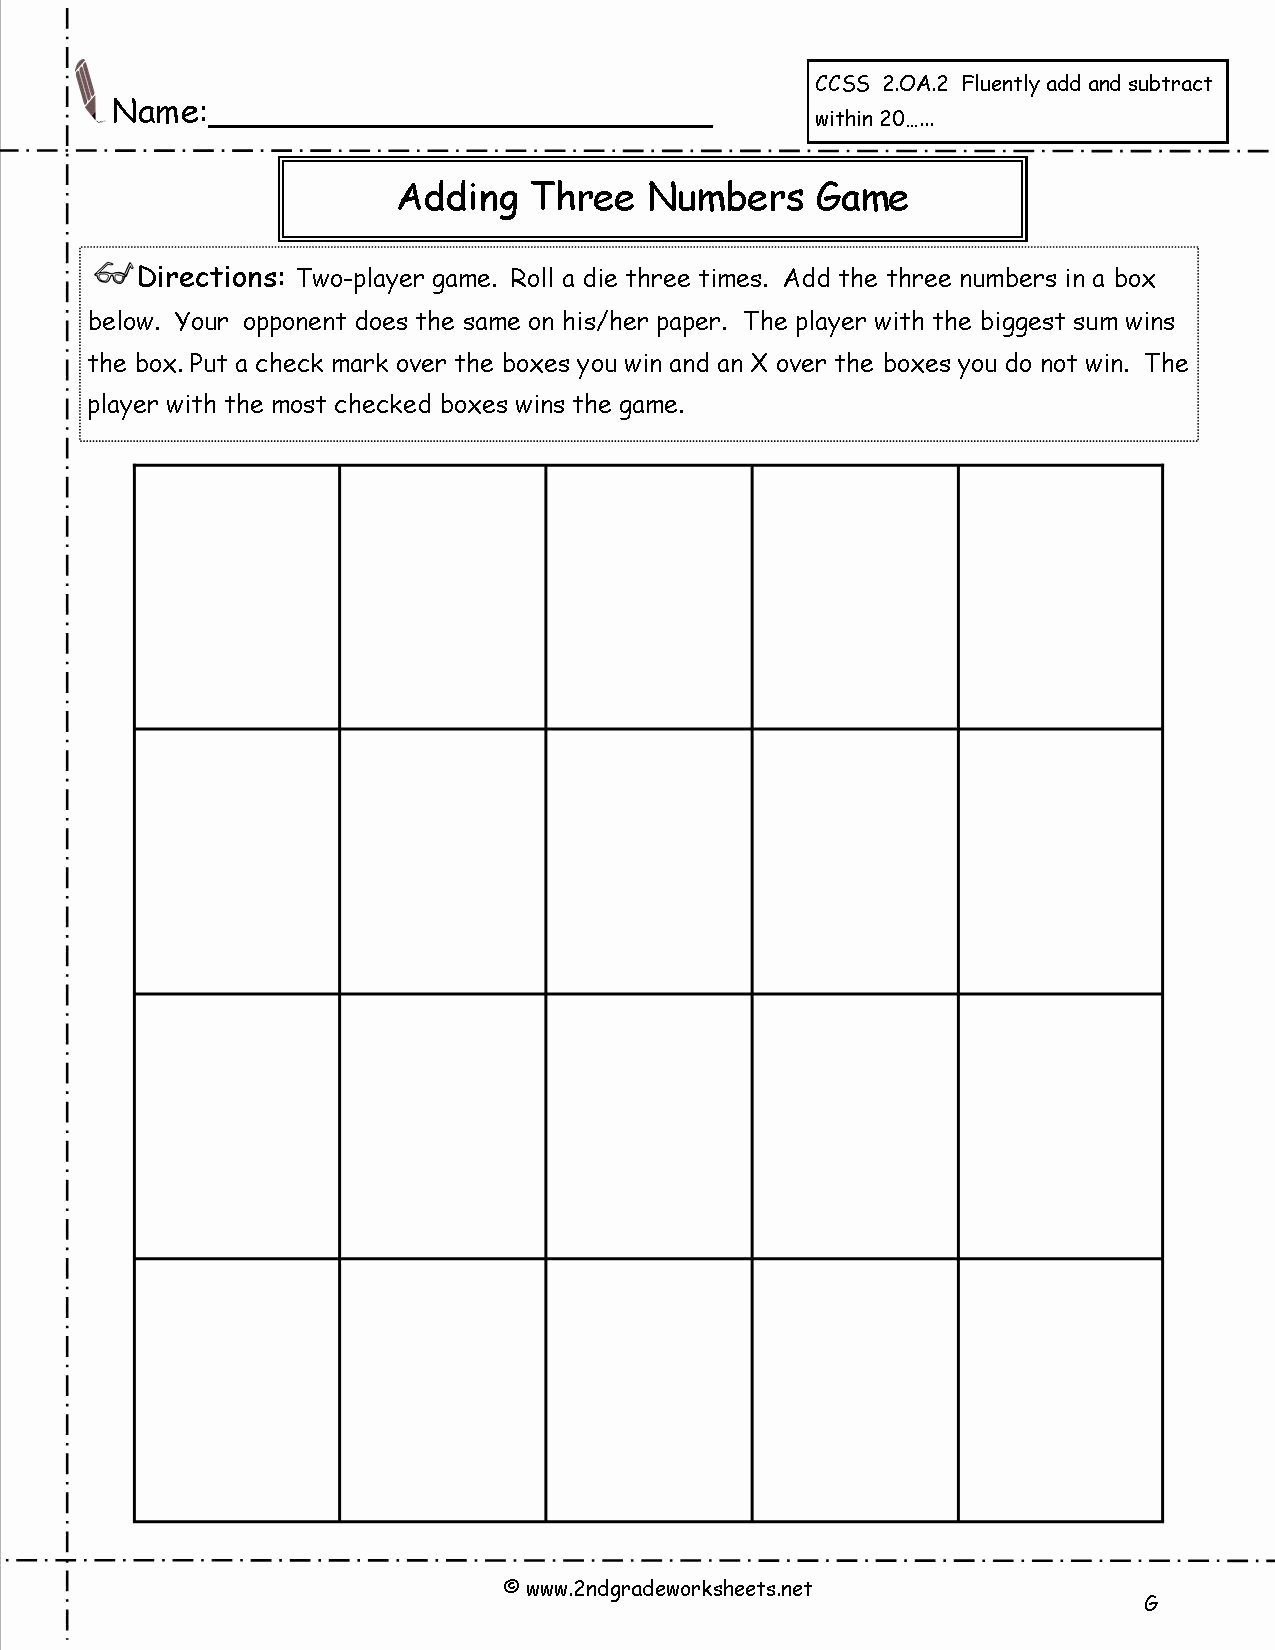 Adding Three Numbers Worksheet Awesome Adding Three or More Single Digit Numbers Worksheets